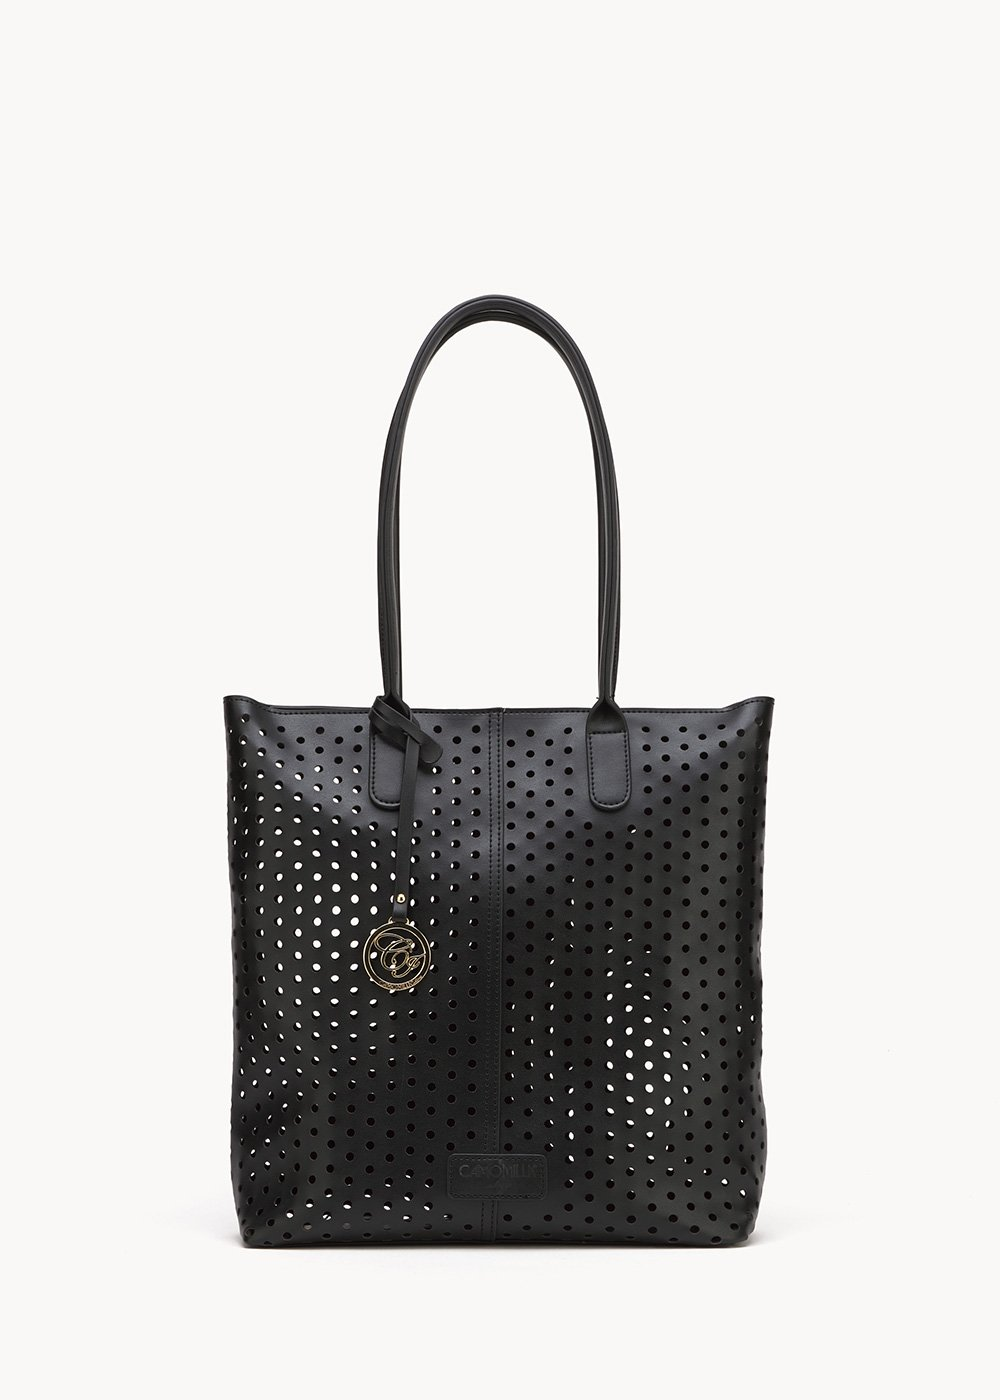 Shopping bag Blyth traforata - Black - Donna